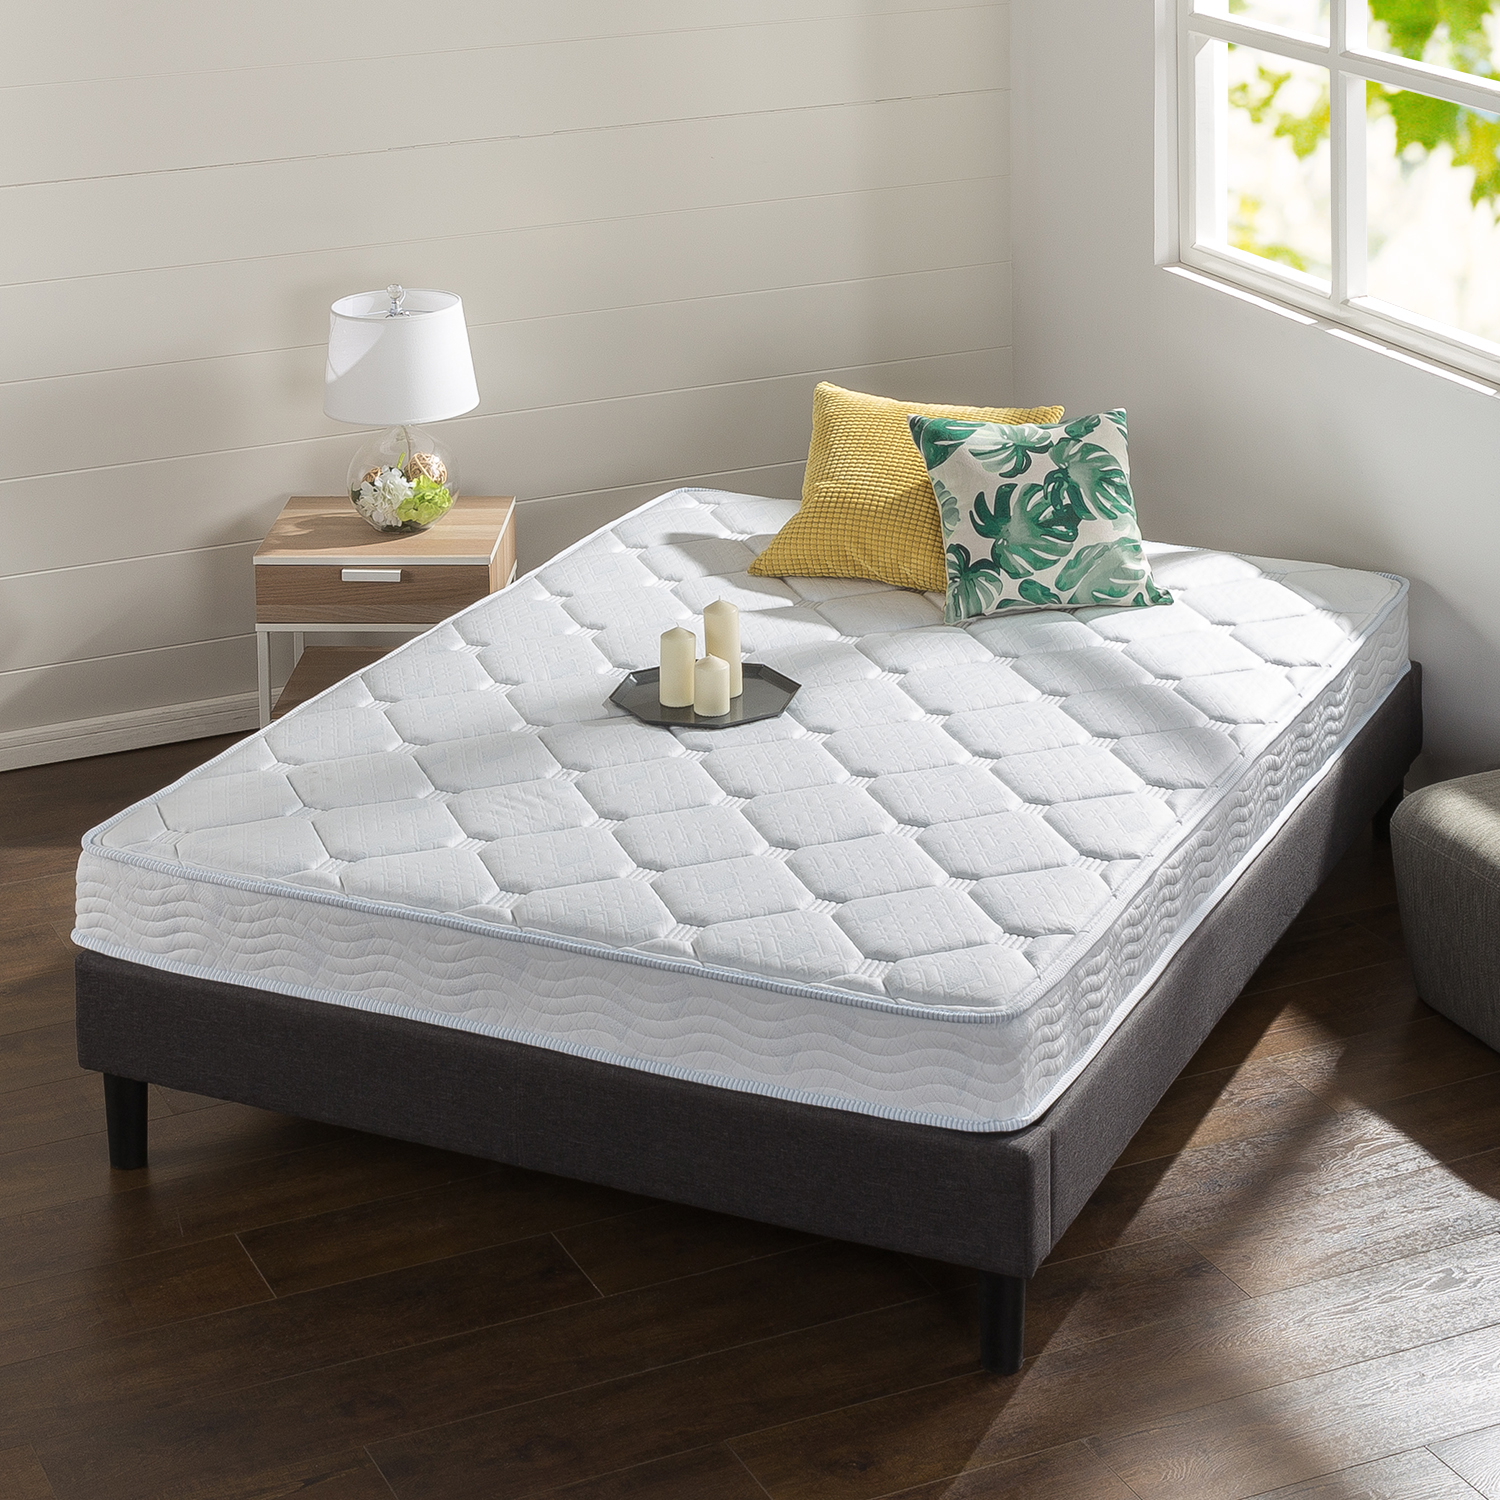 Spa Sensations 6 Inch Spring and Gel Memory Foam Mattress by Zinus